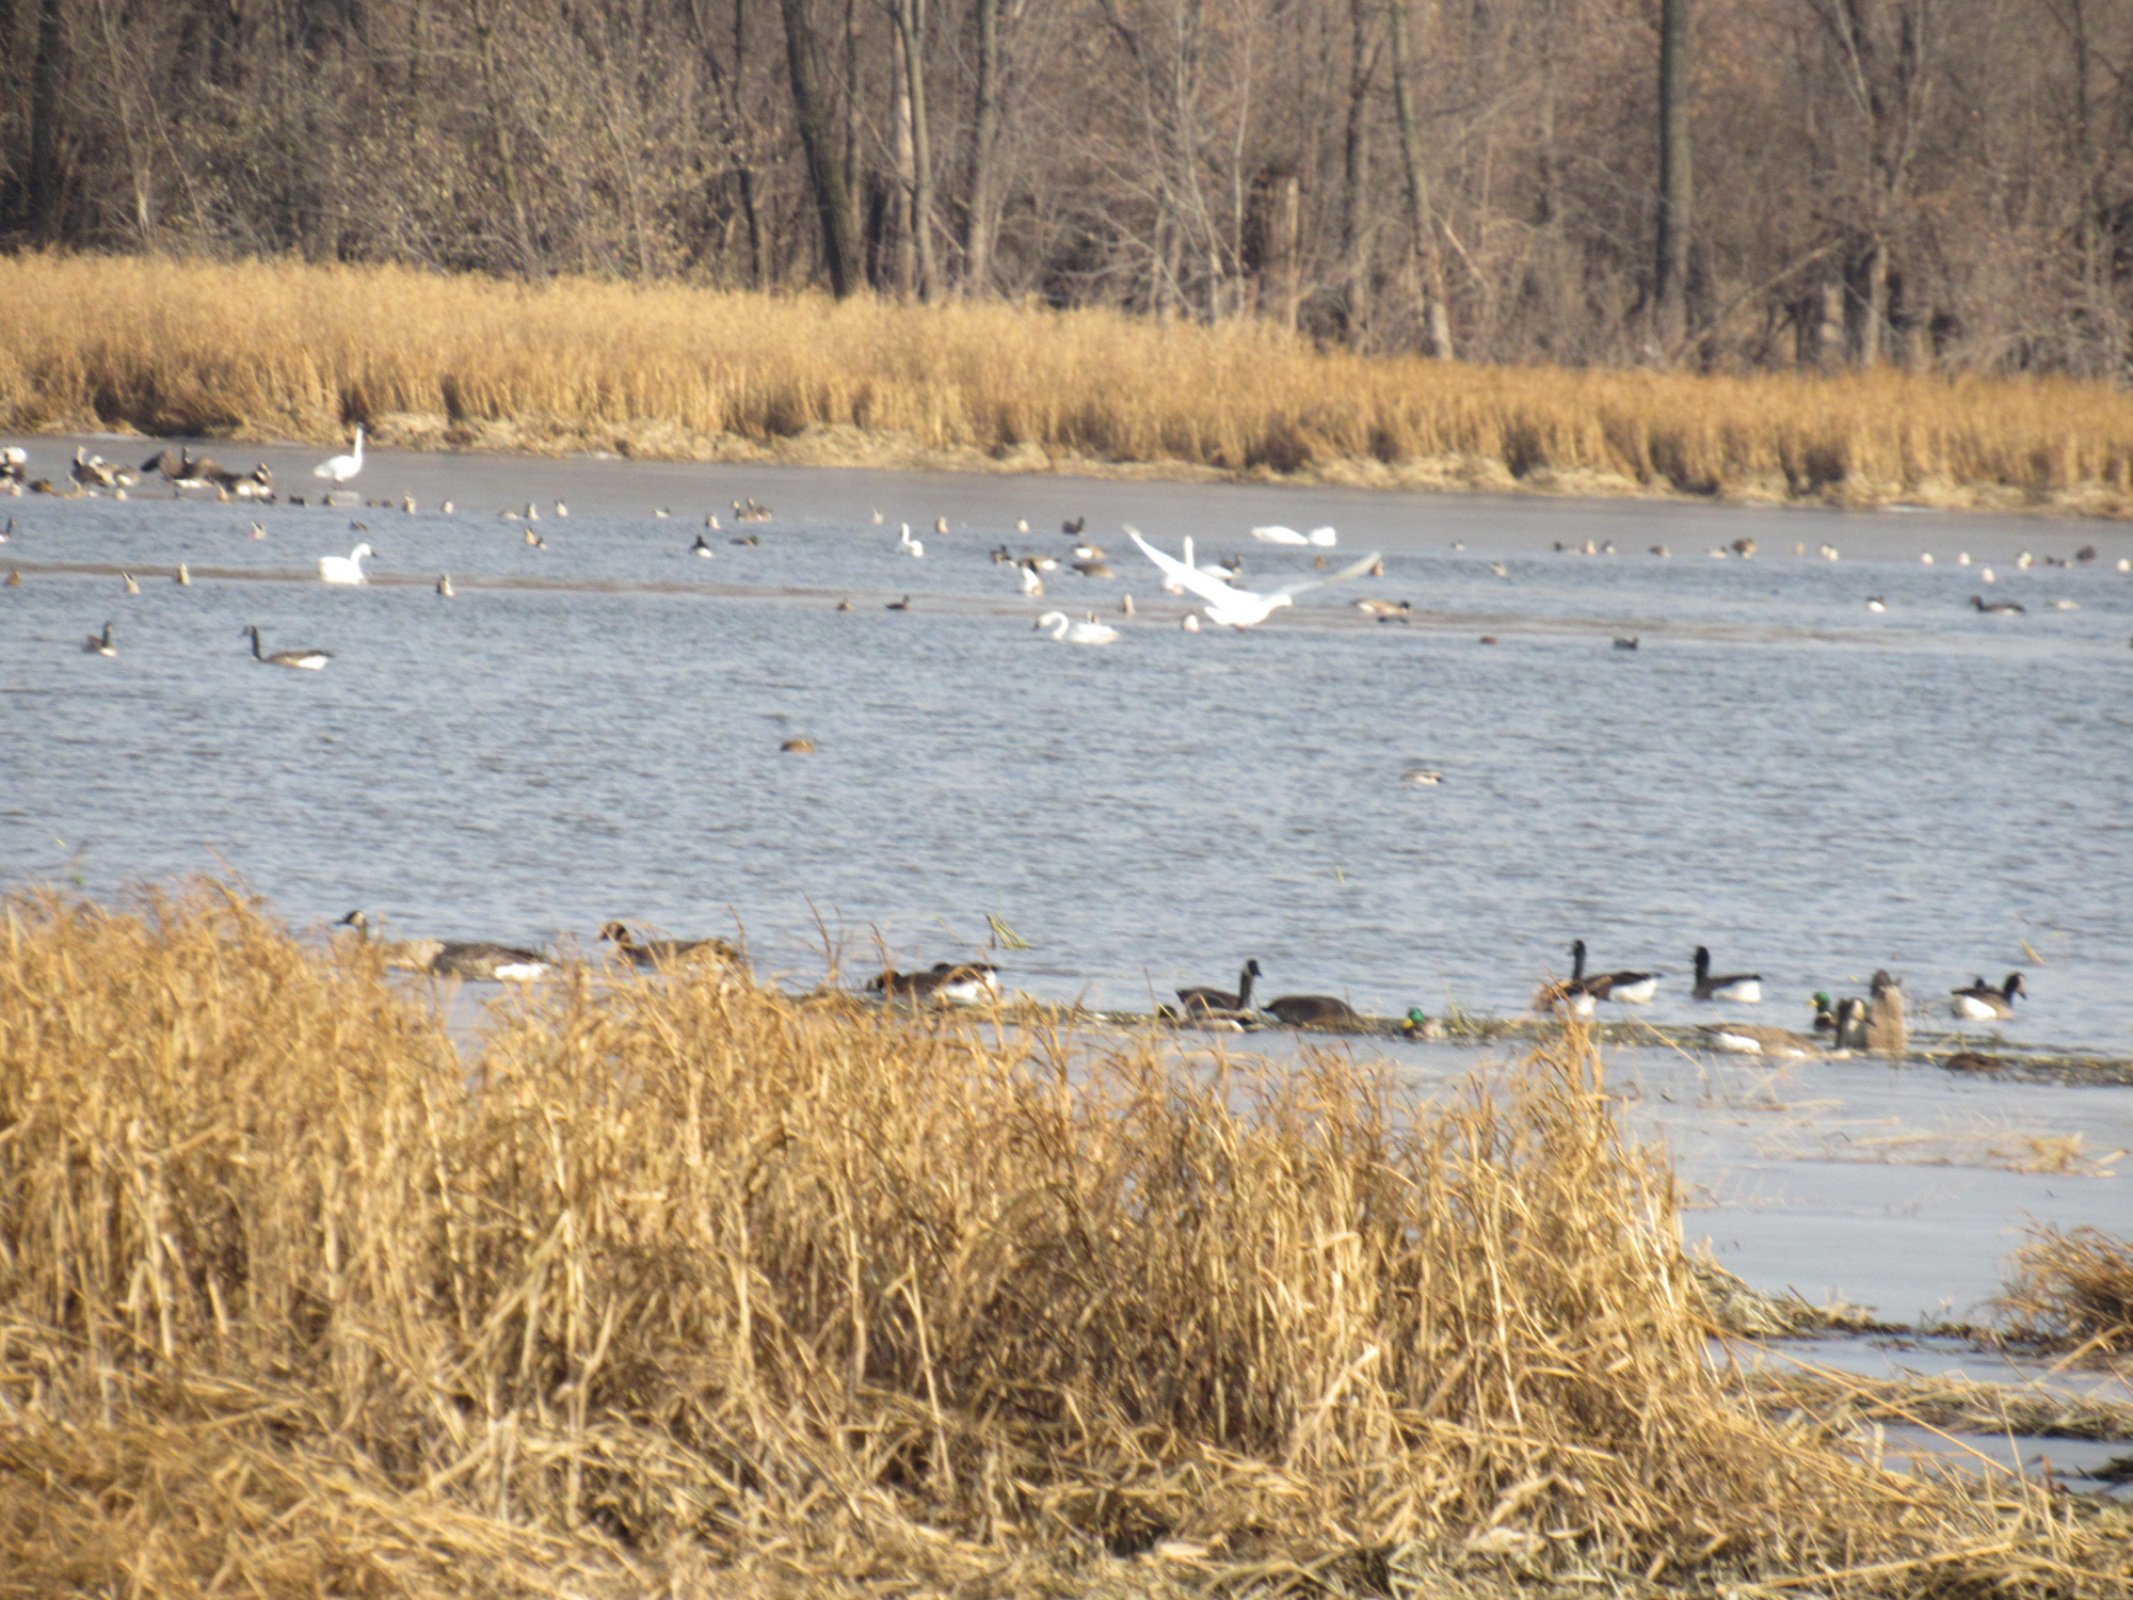 Some of my swan, duck, and geese friends at the Minnesota River this week. They settle me.